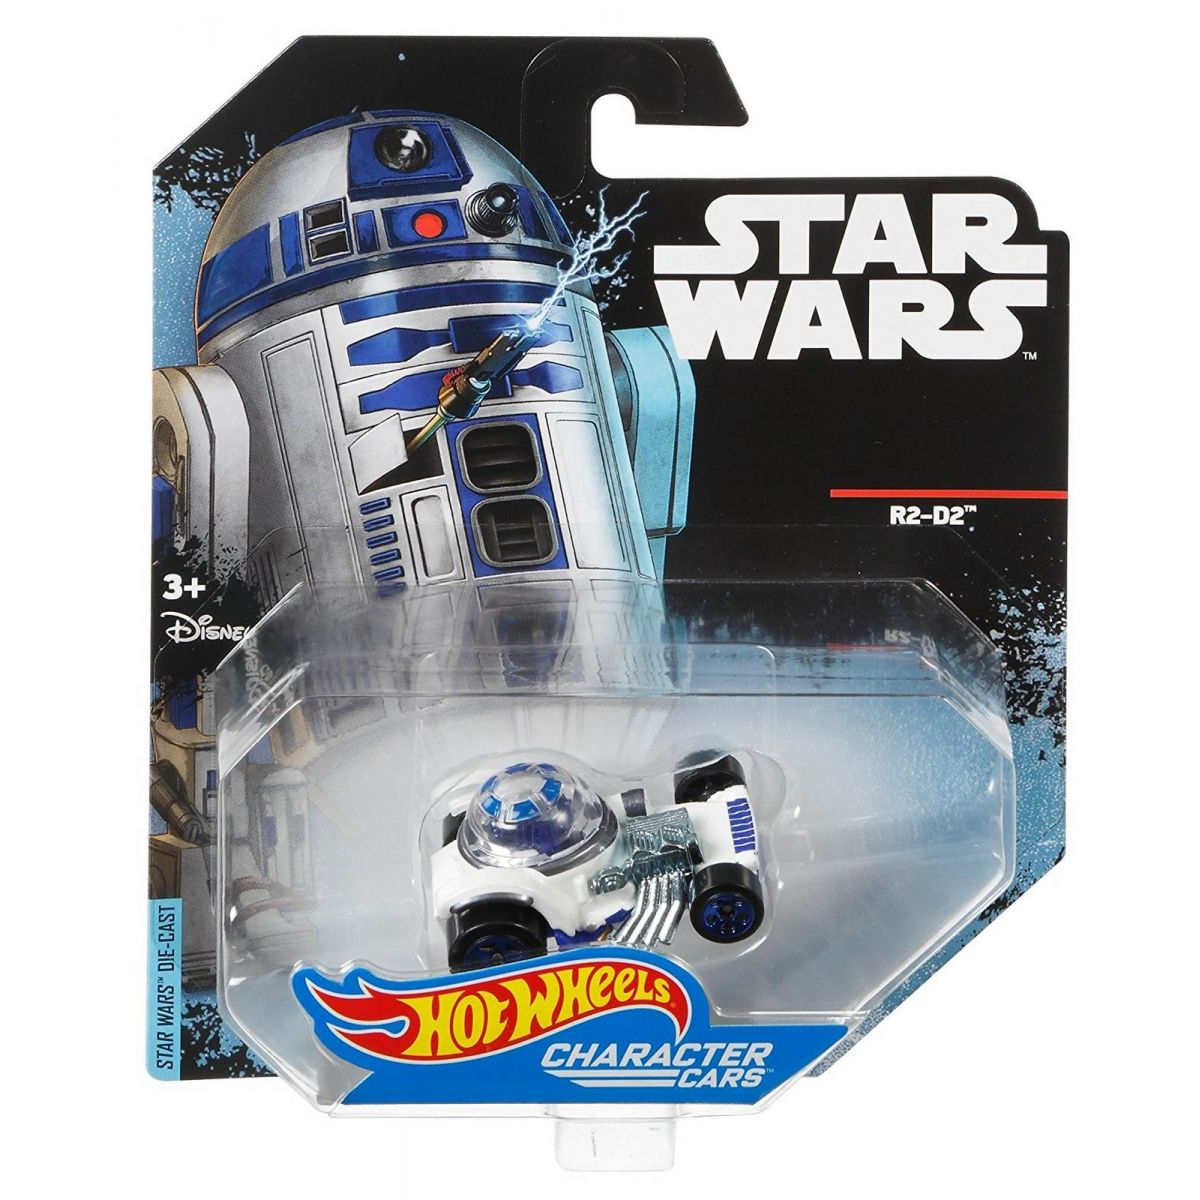 Star Wars: R2-D2 - Hot Wheels